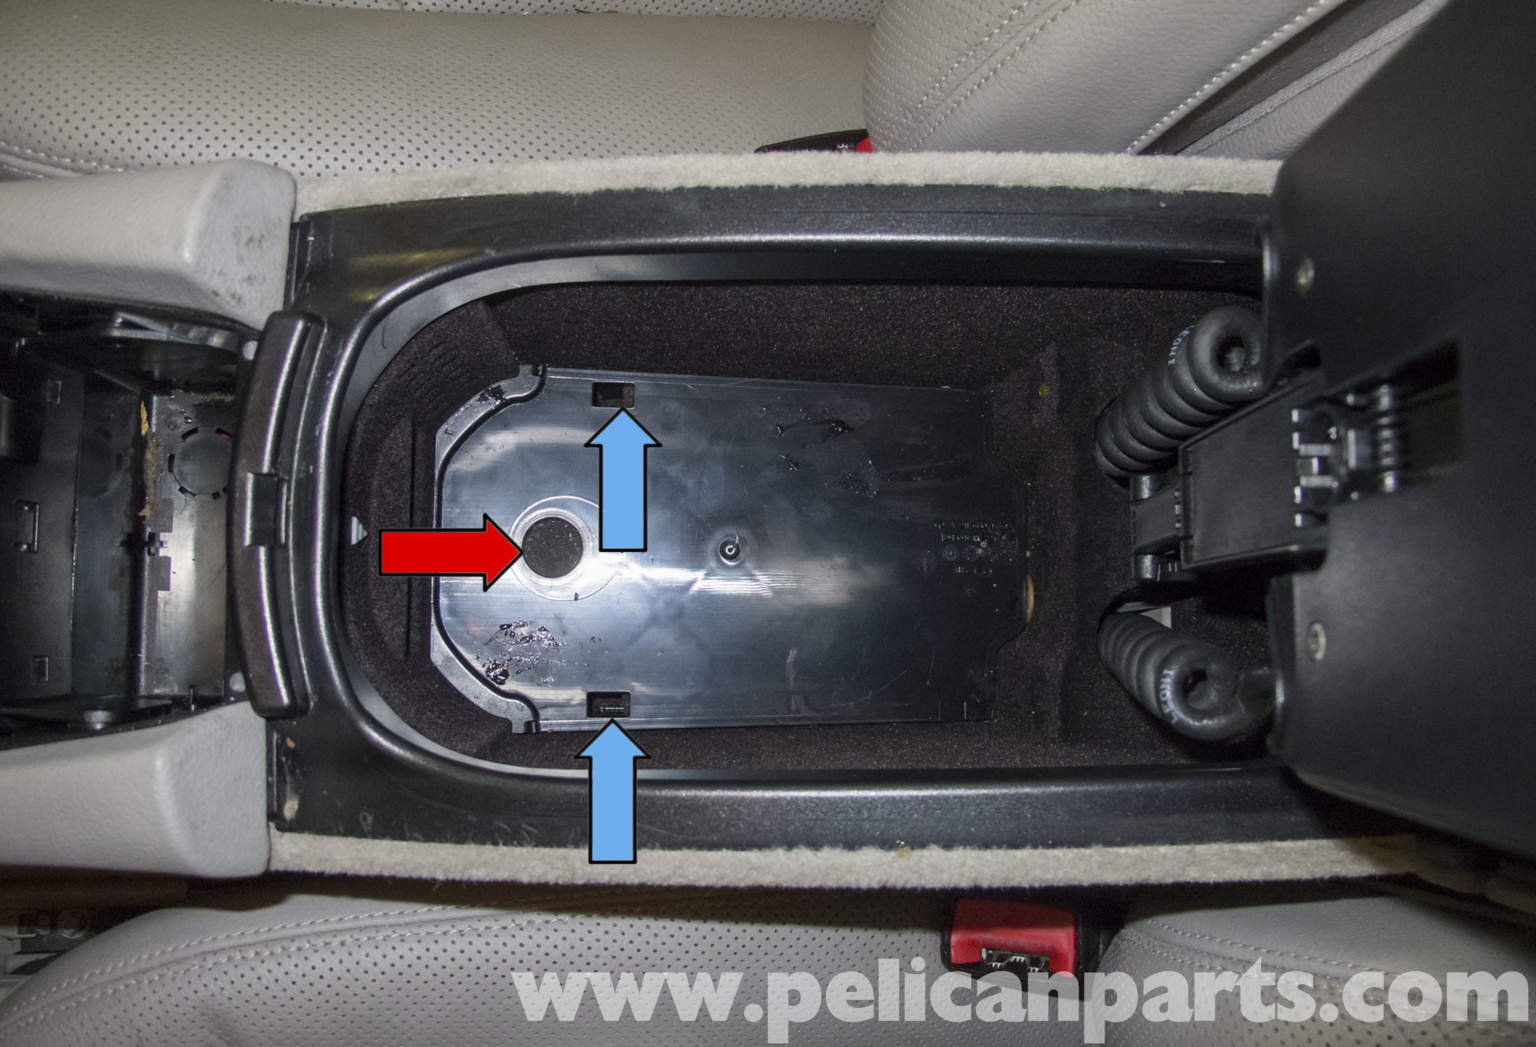 Pelican technical article mercedes benz w211 center console replacement for Mercedes benz replacement parts for the interior